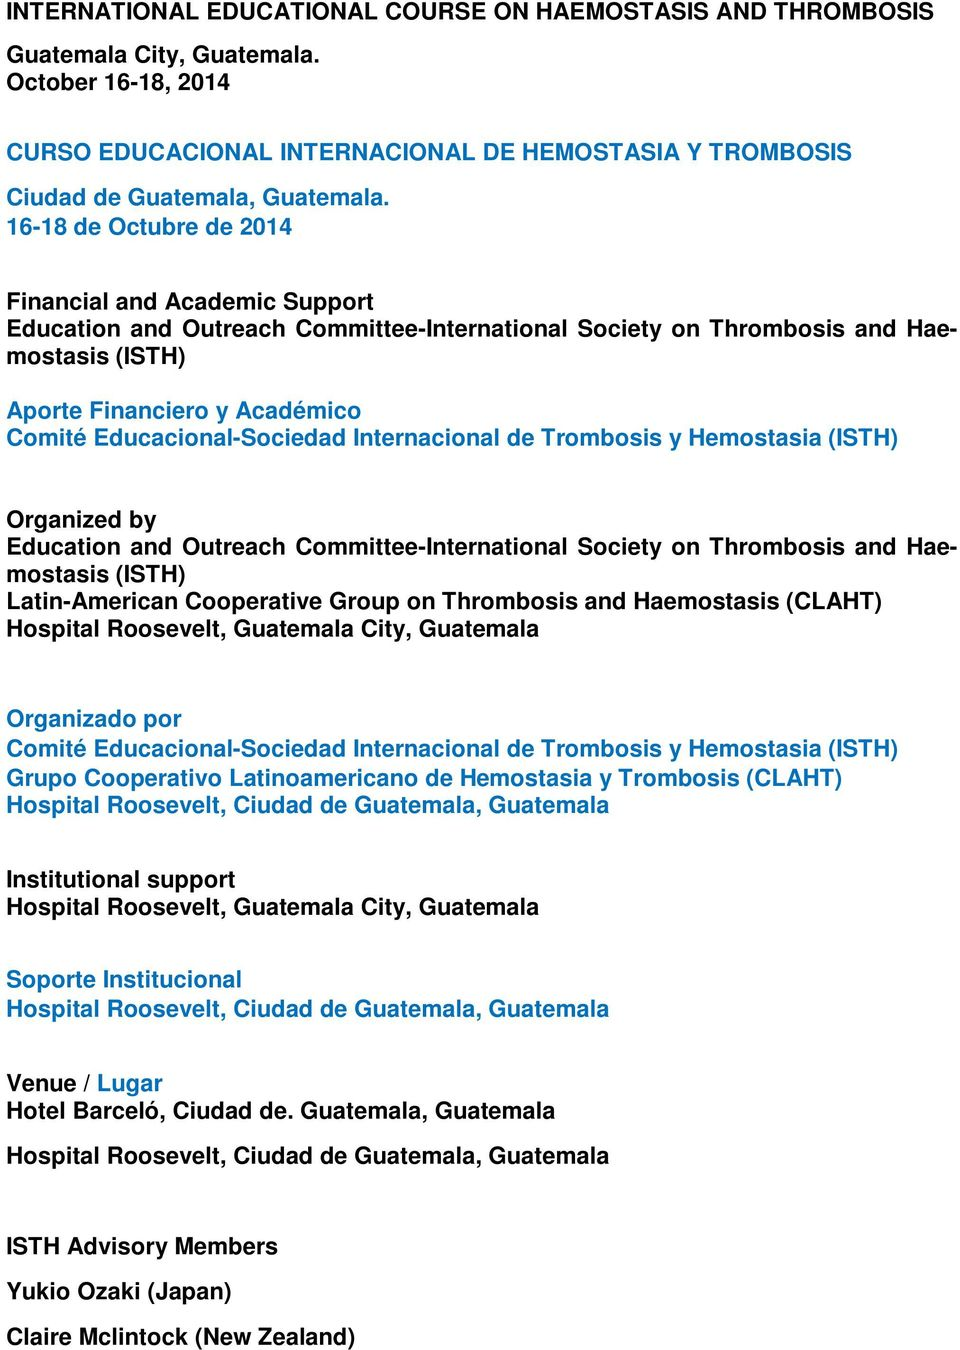 Educacional-Sociedad Internacional de Trombosis y Hemostasia (ISTH) Organized by Education and Outreach Committee-International Society on Thrombosis and Haemostasis (ISTH) Latin-American Cooperative